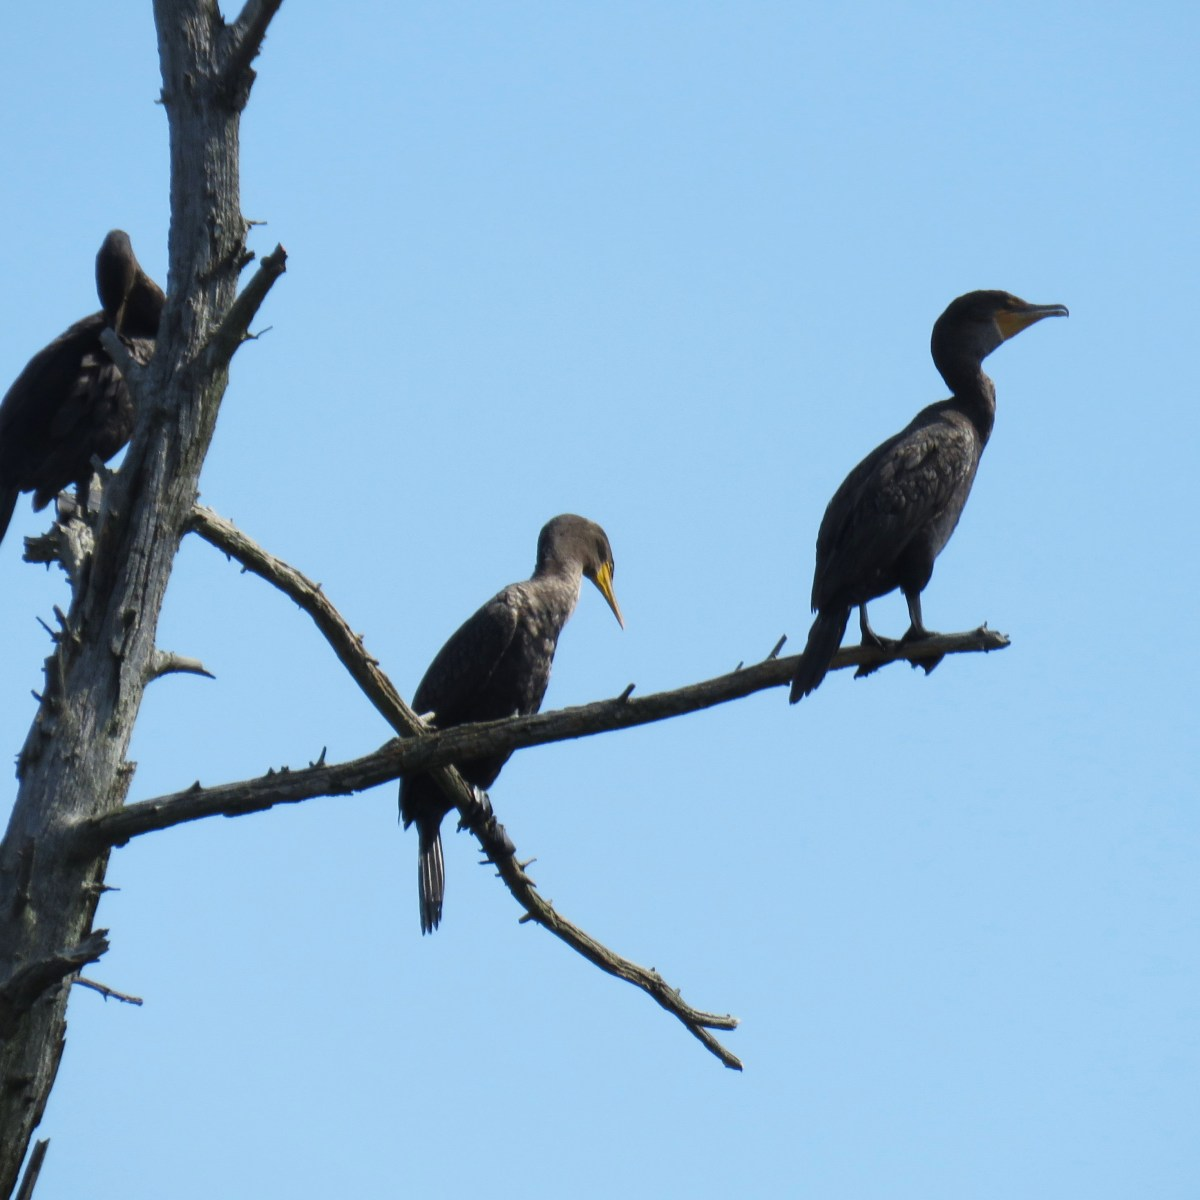 Three cormorants perched in a leafless tree